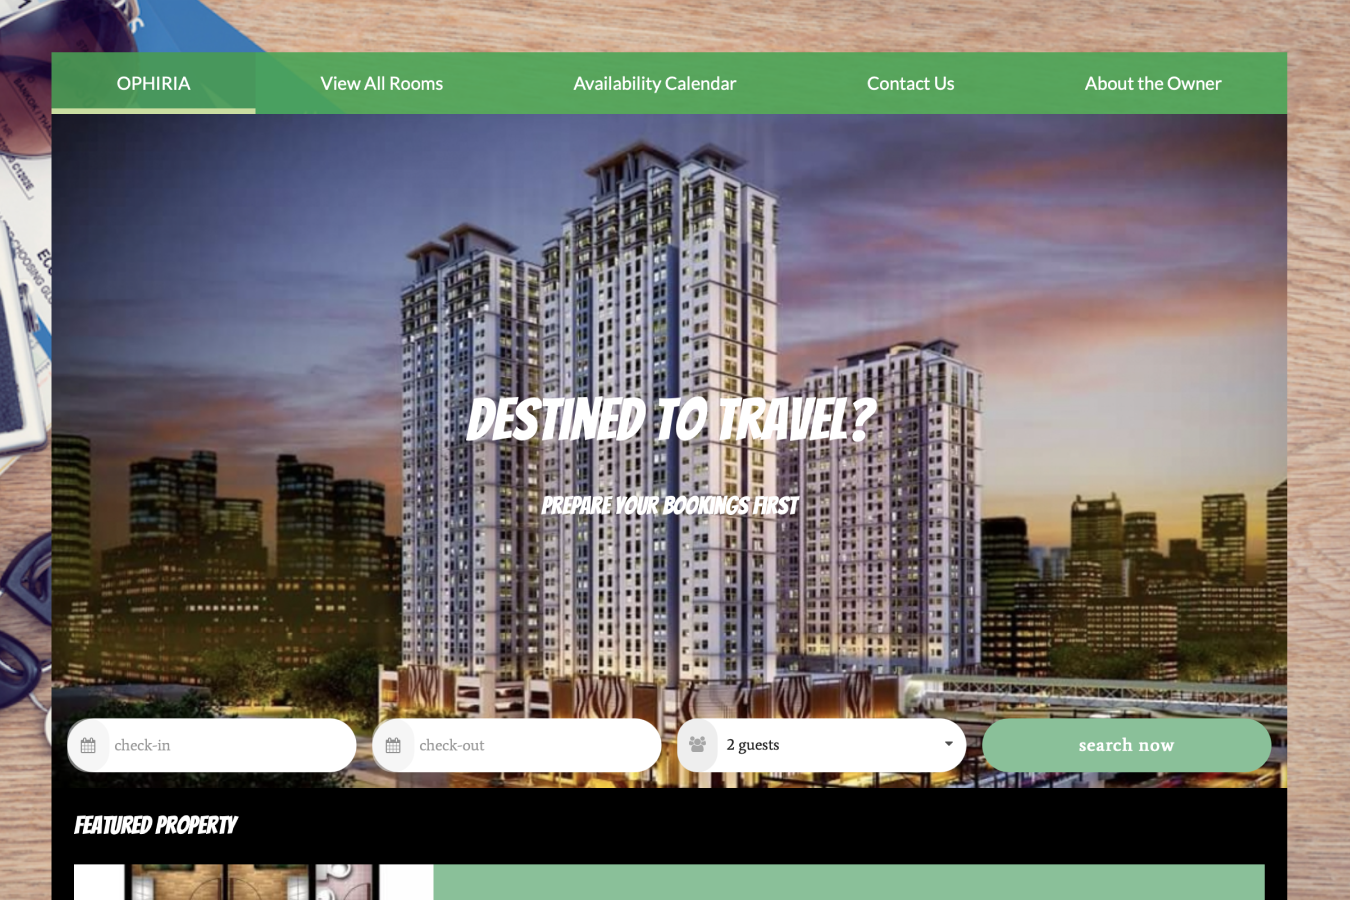 Booking engine website powered by Futurestay